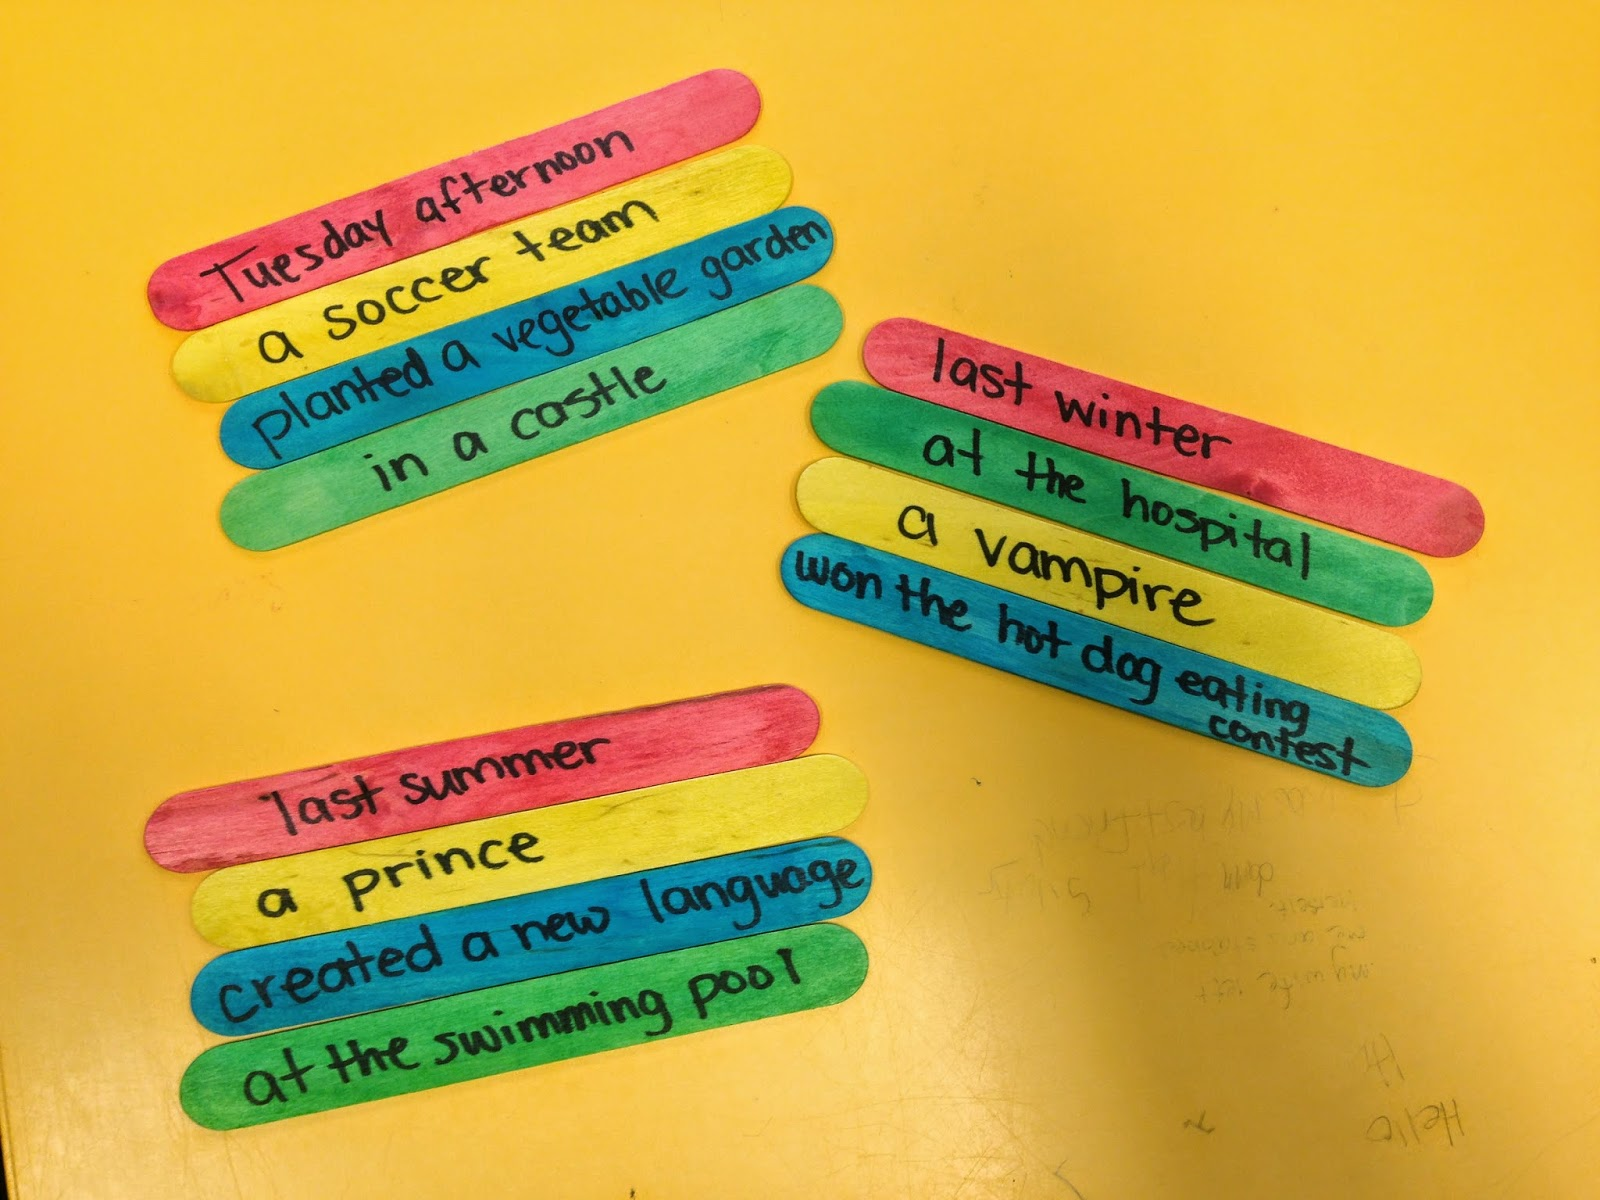 http://oneteachersadventures.blogspot.ca/2014/04/teaching-5-ws-with-story-sticks.html